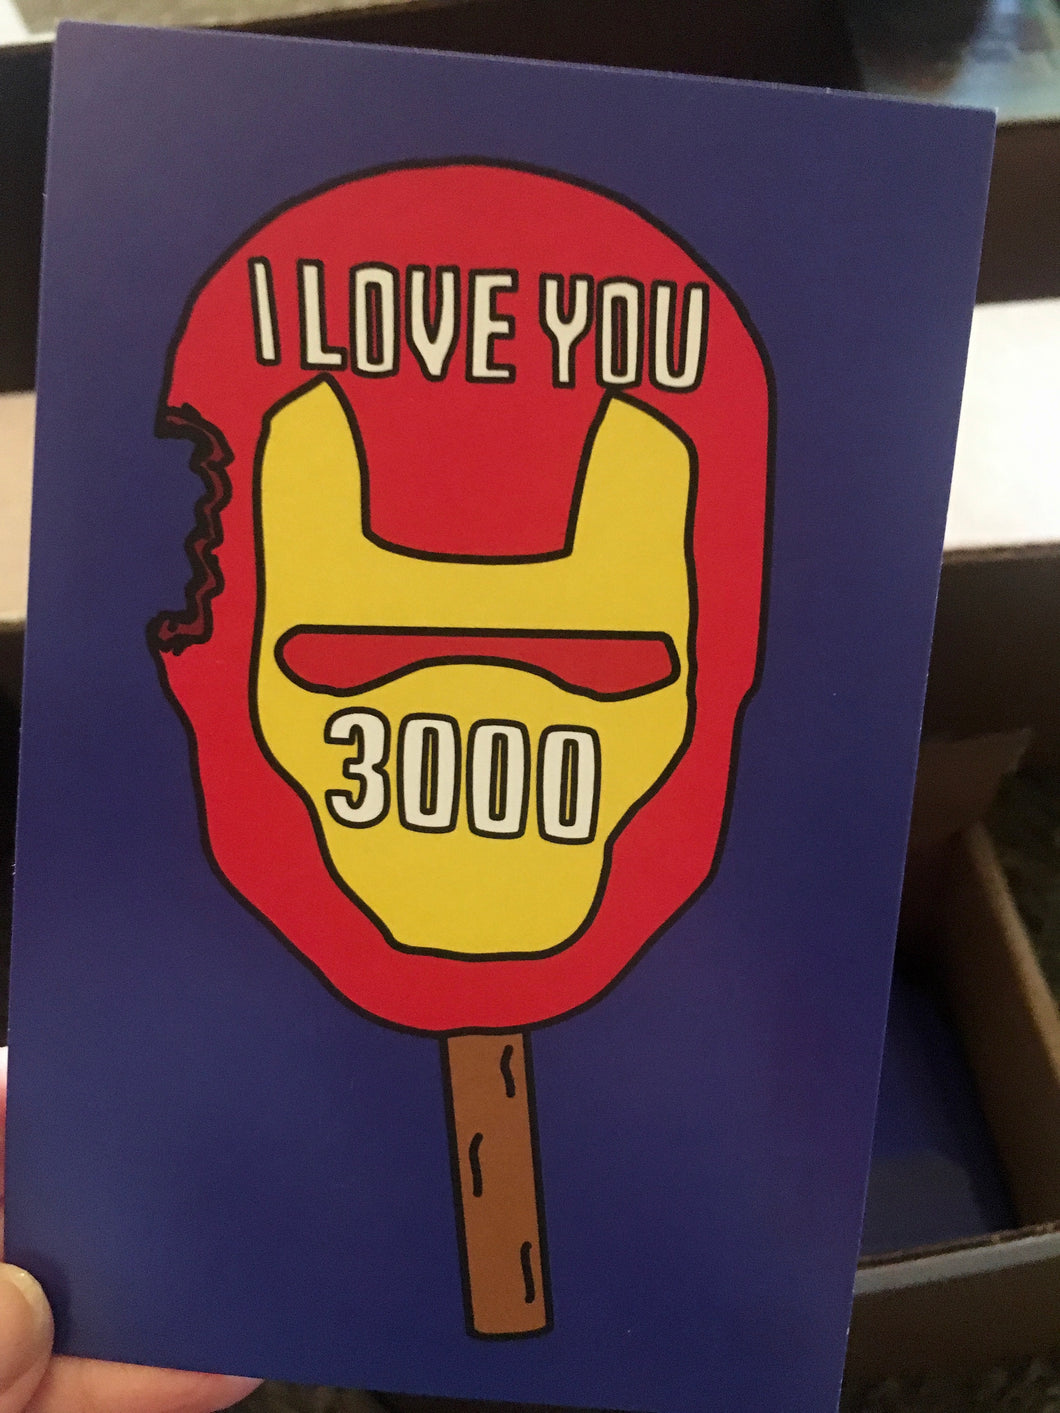 I Love You 3000 - 4 x 6